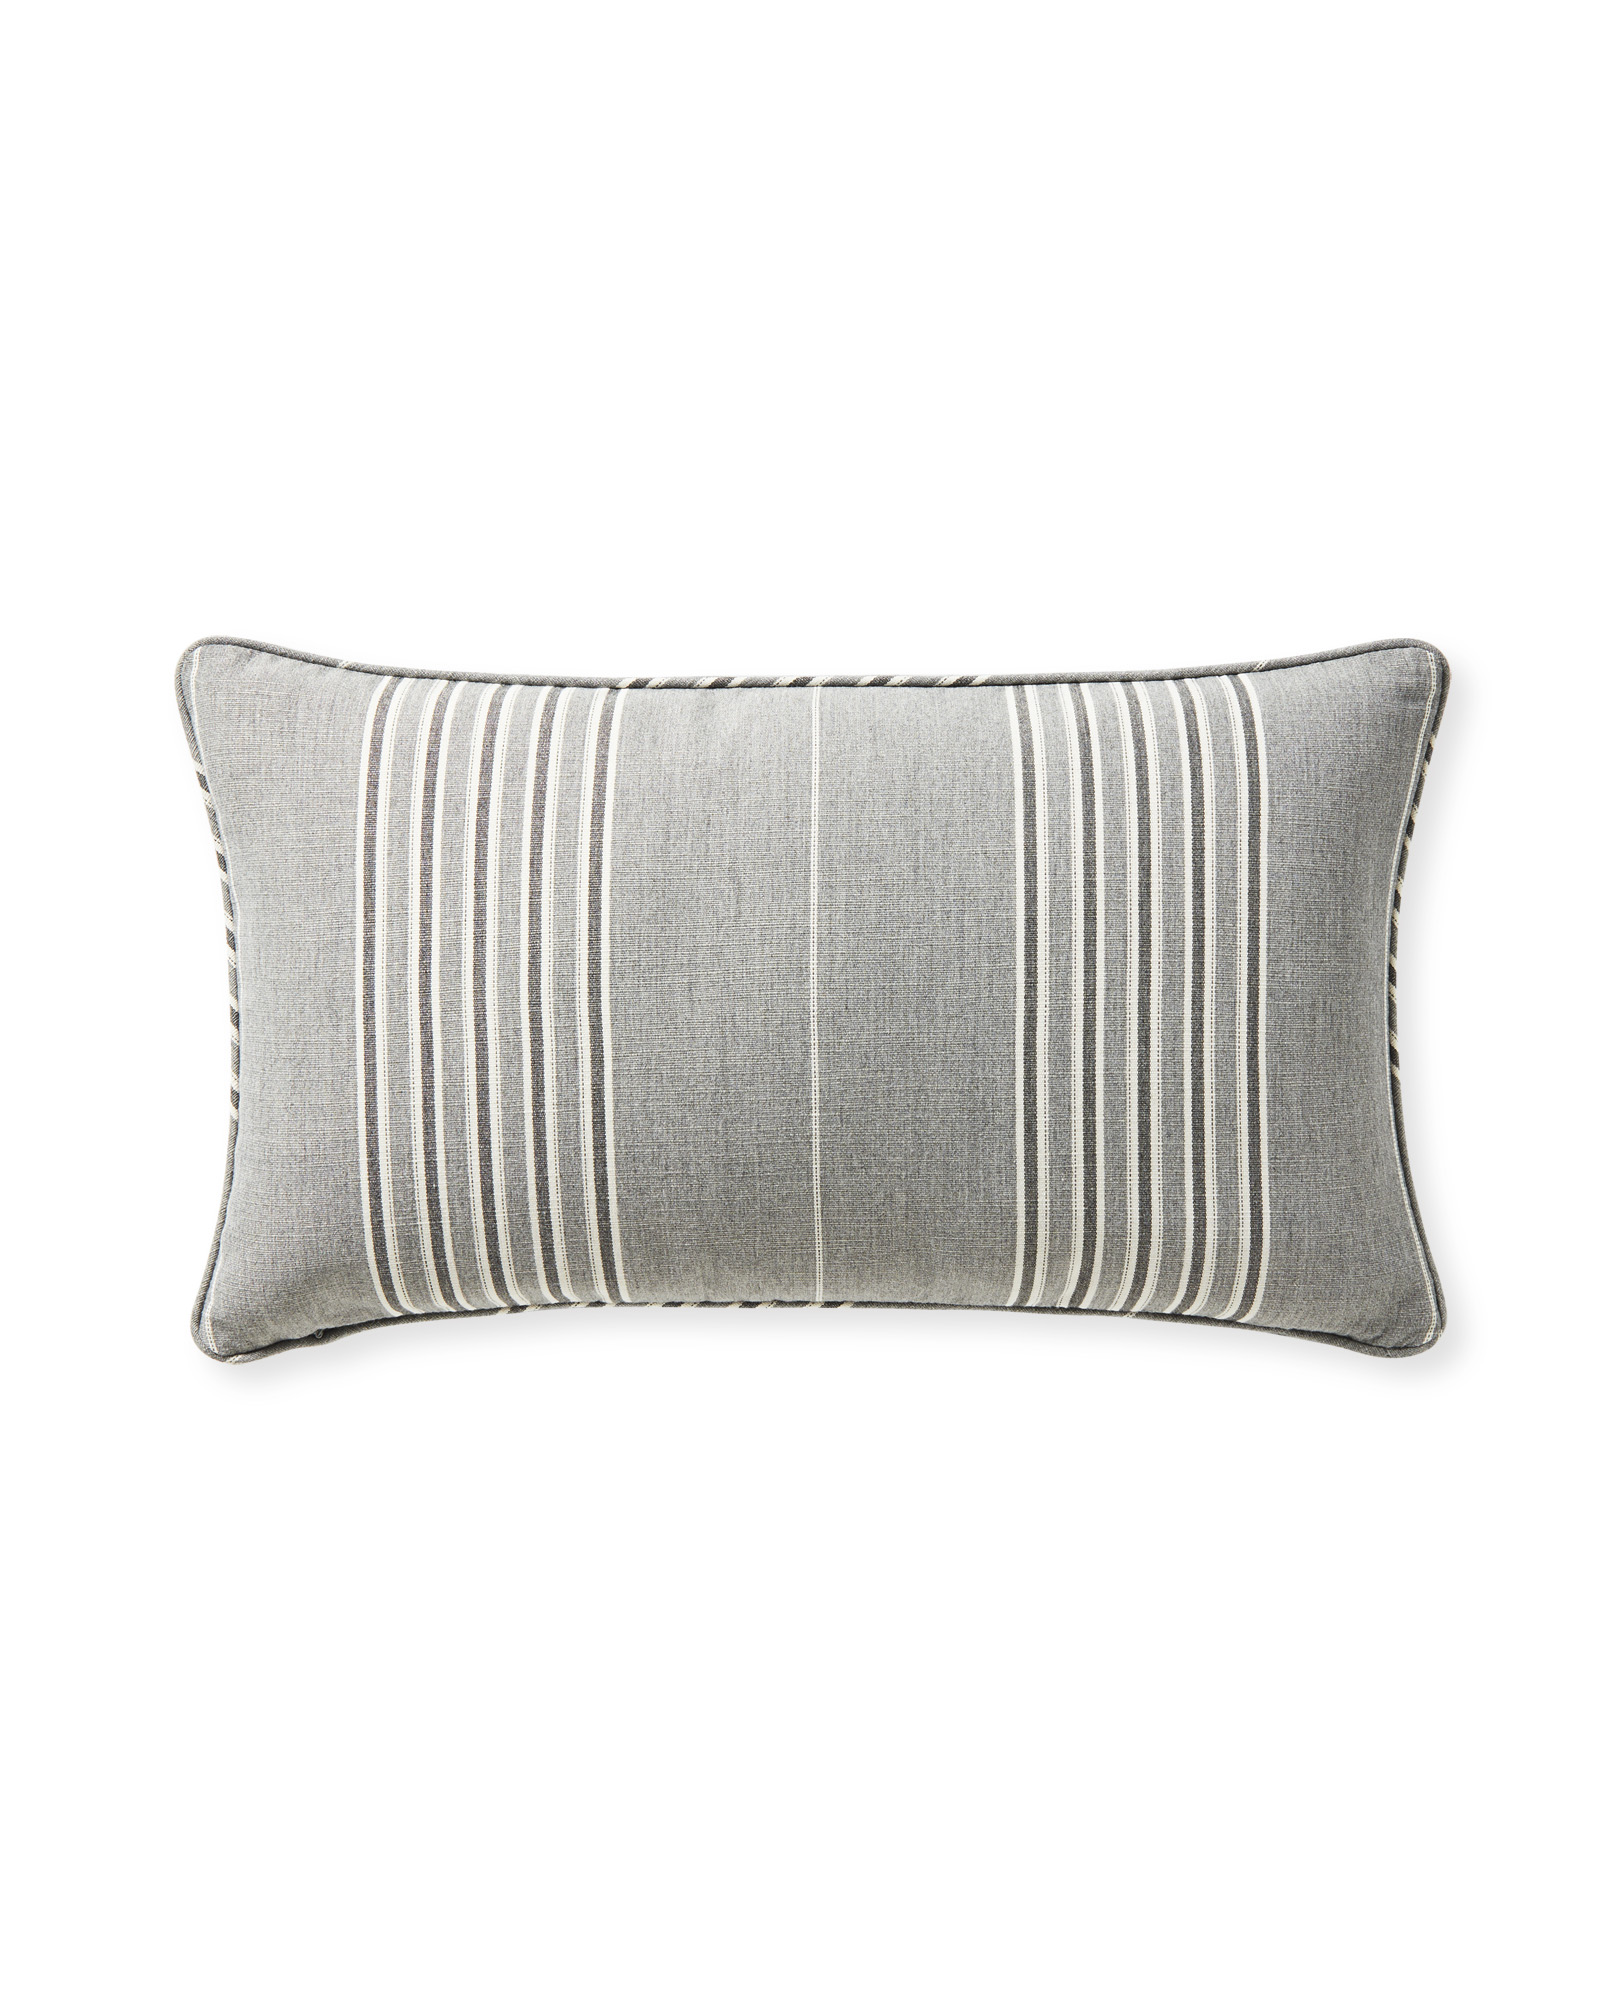 Perennials Rockland® Pillow Cover, Smoke